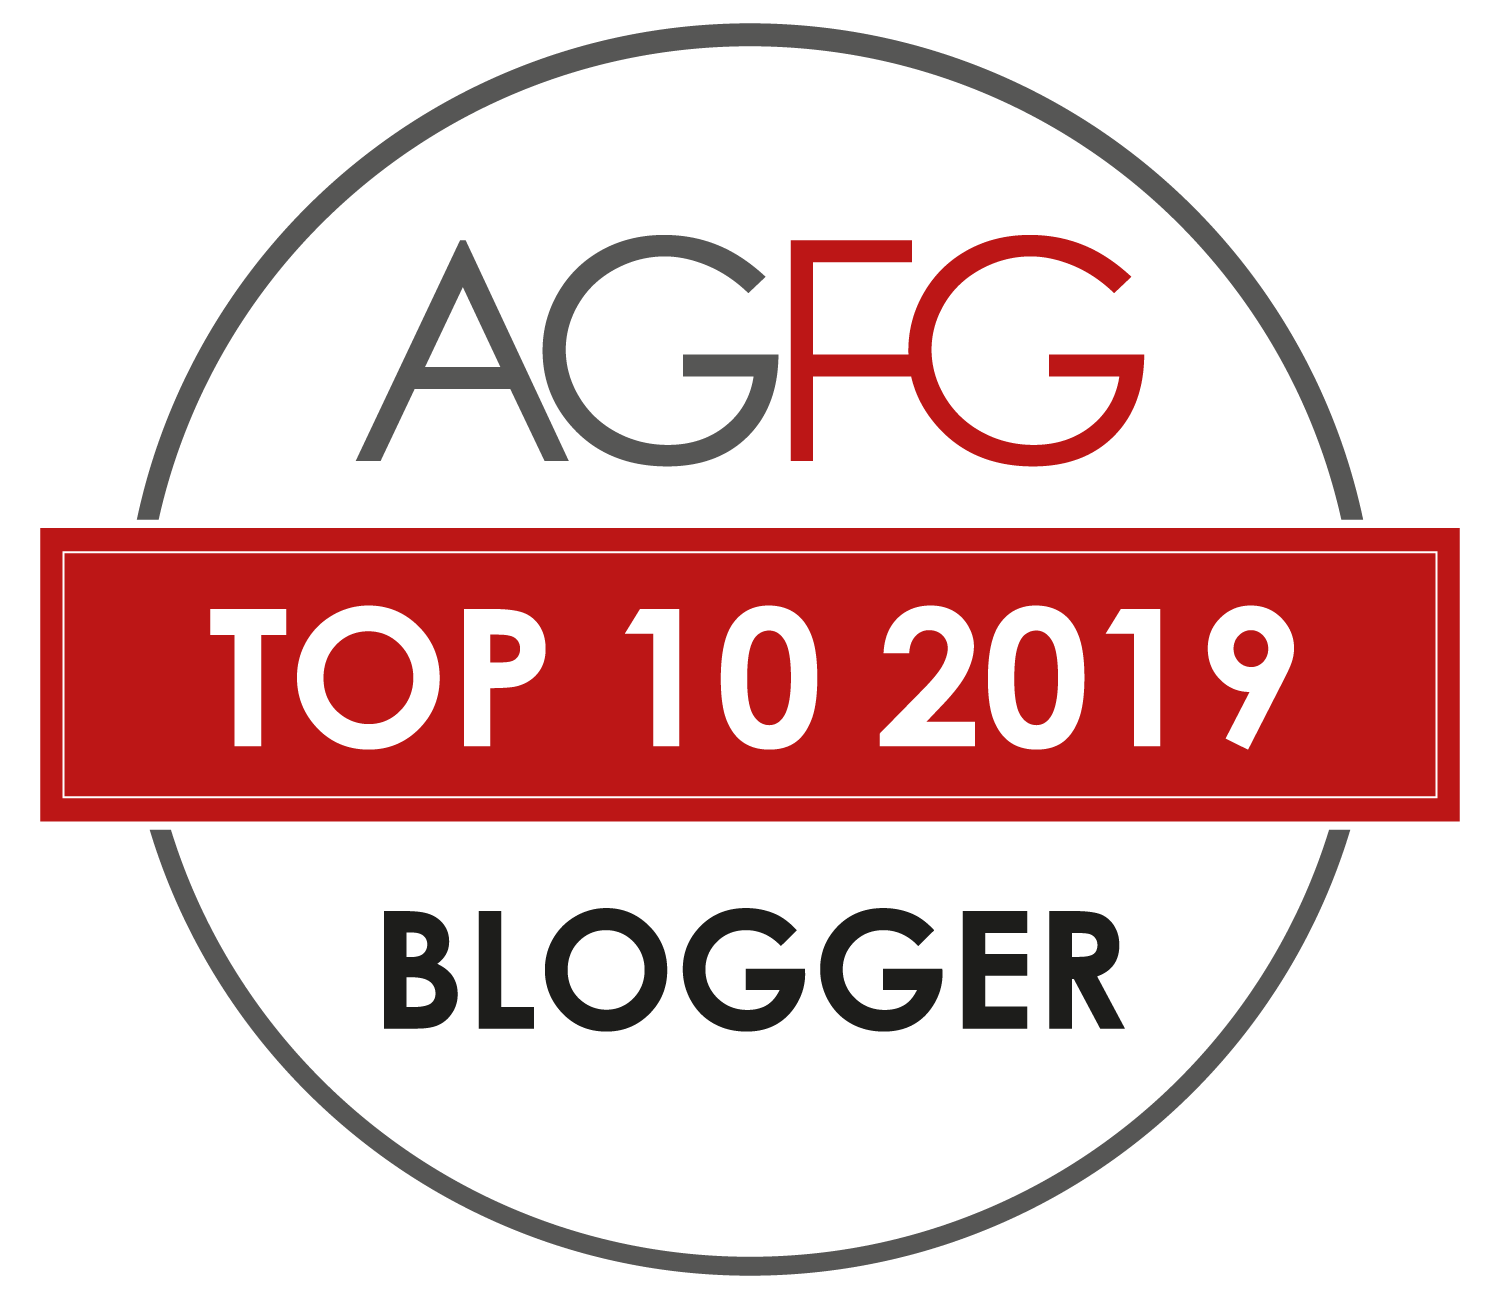 Top 10 AGFG Blogger 2019